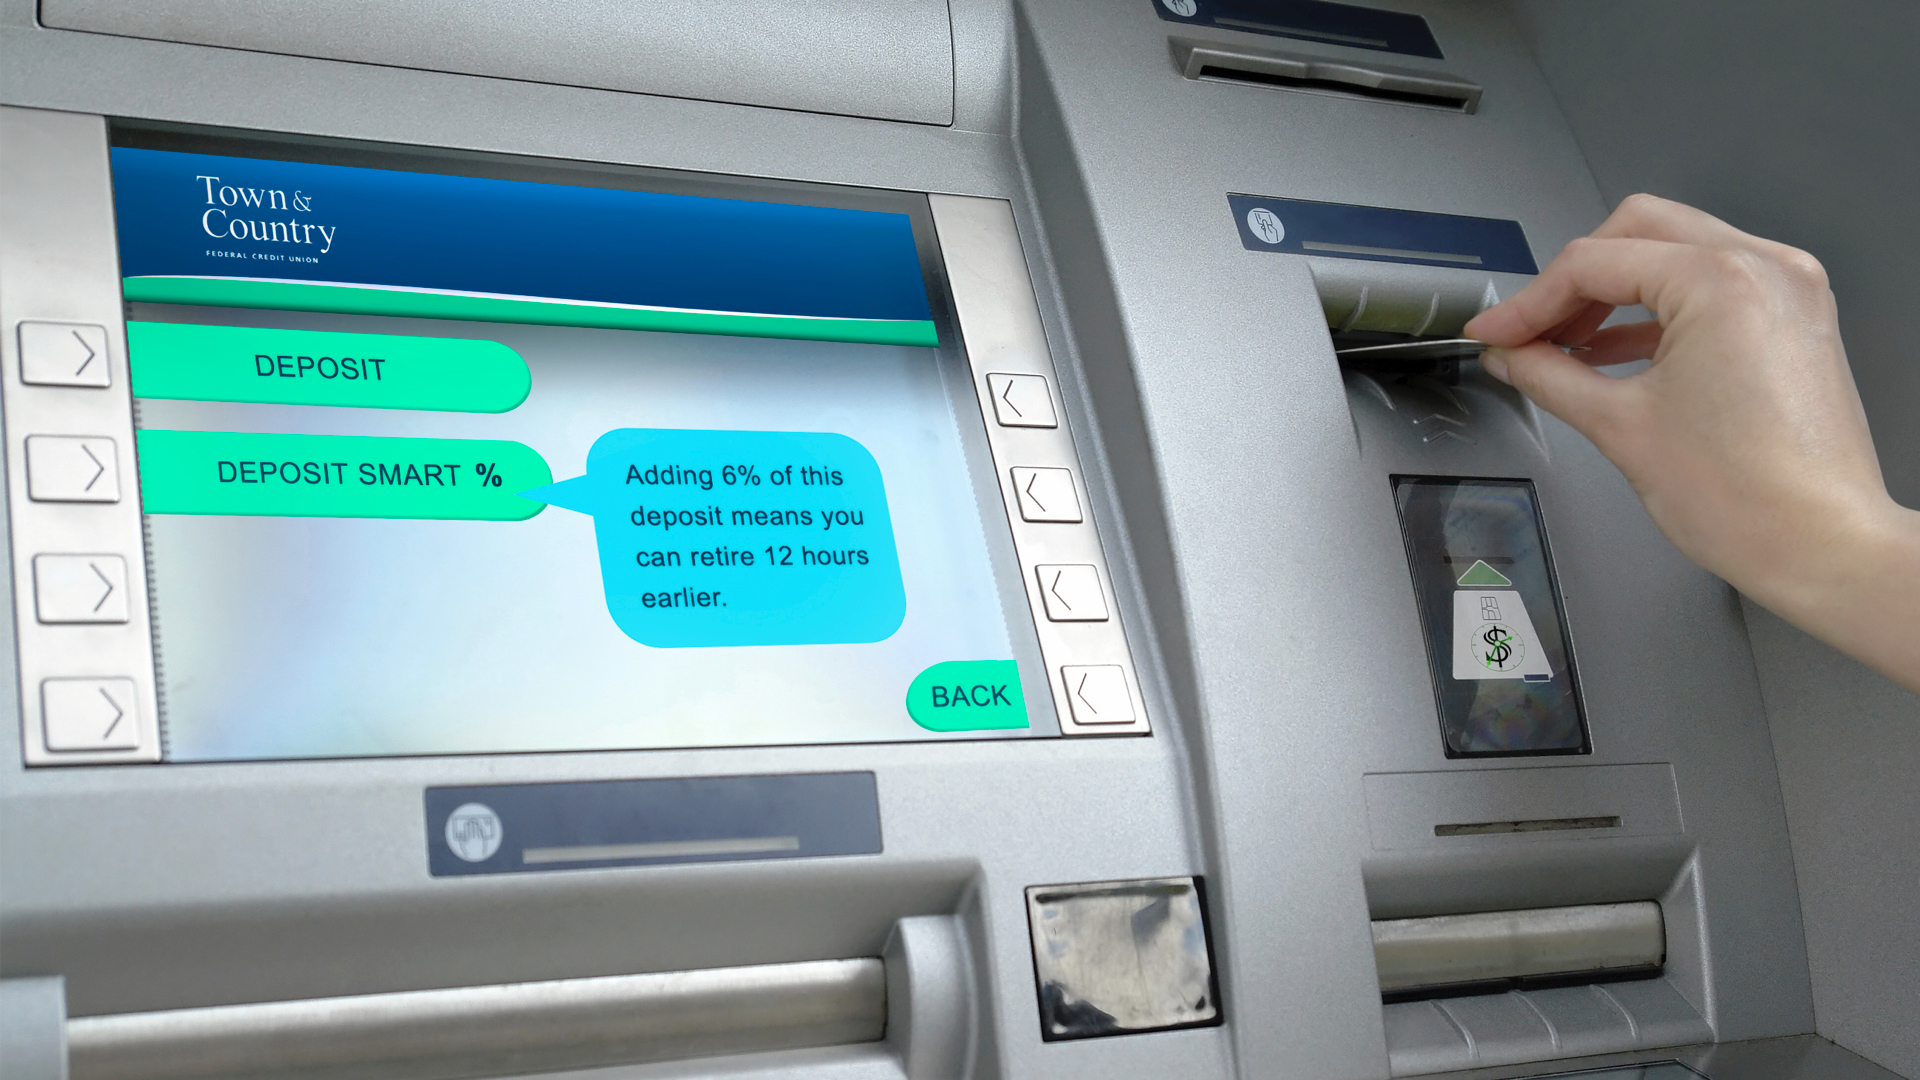 INPUT STAGE- when depositing monies, the screen offers two main choices for allocating the funds.